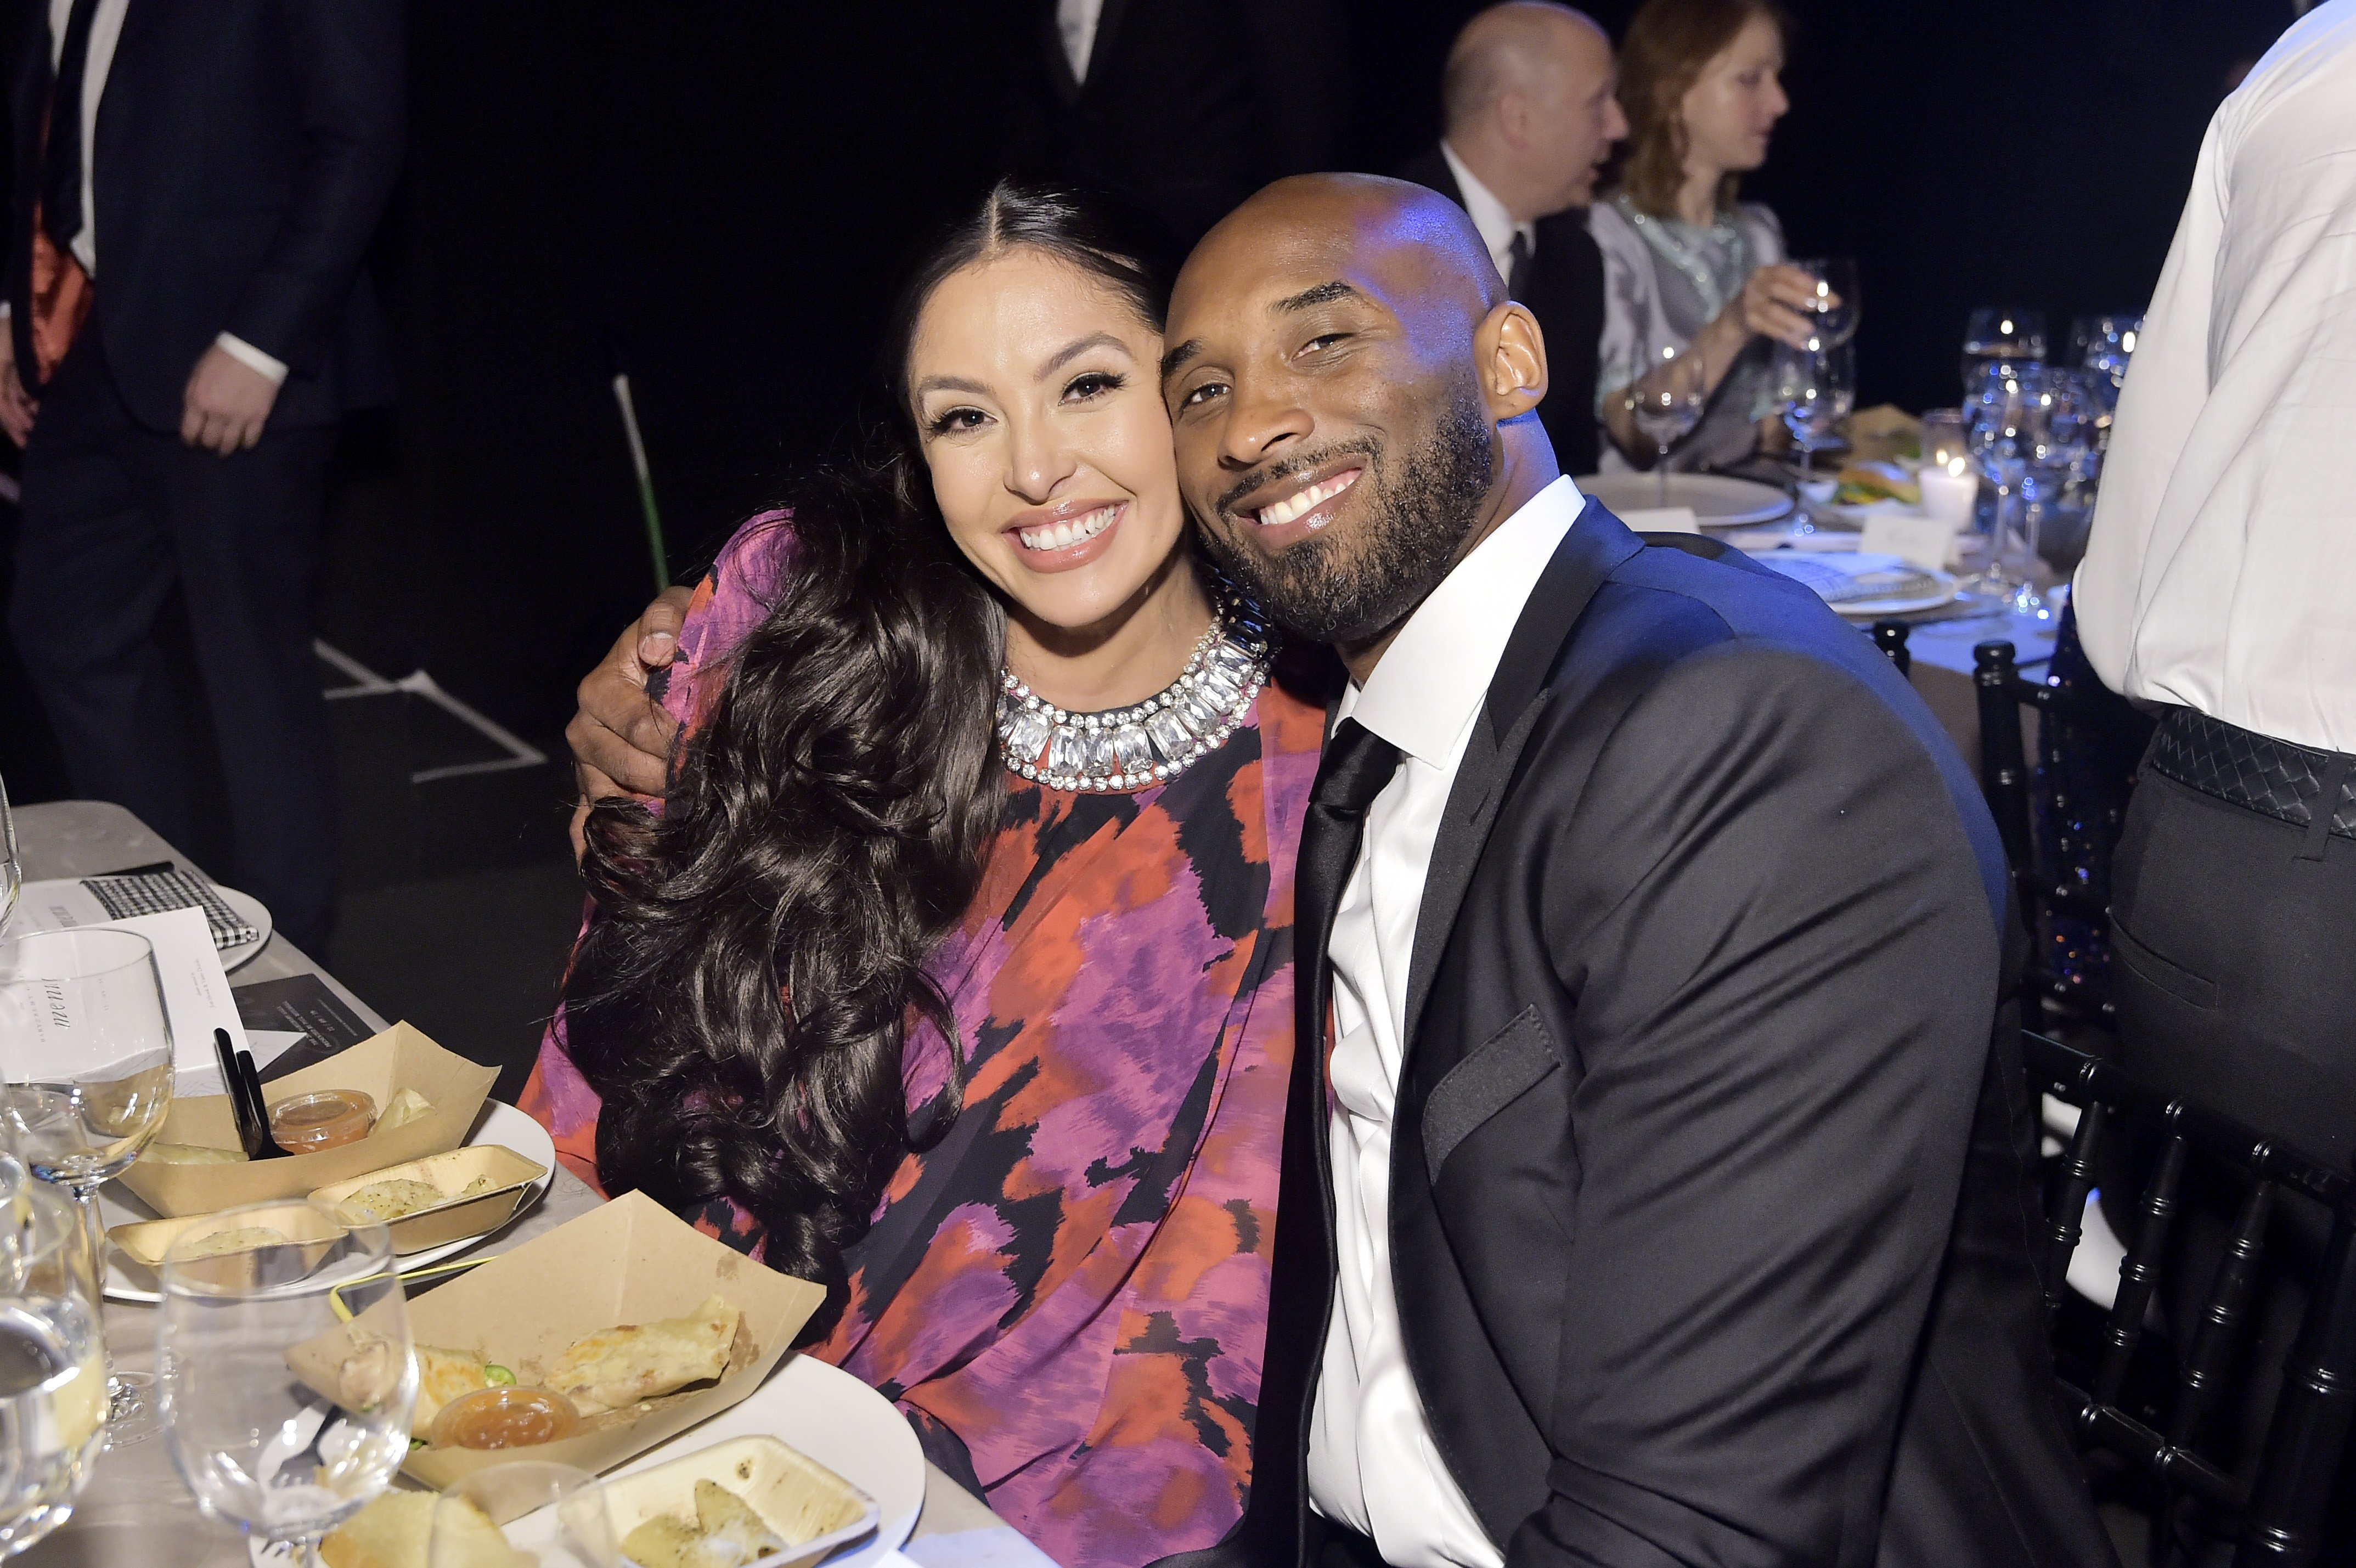 Vanessa Laine Bryant and Kobe Bryant attend the 2019 Baby2Baby Gala presented by Paul Mitchell on November 09, 2019 | Photo: GettyImages